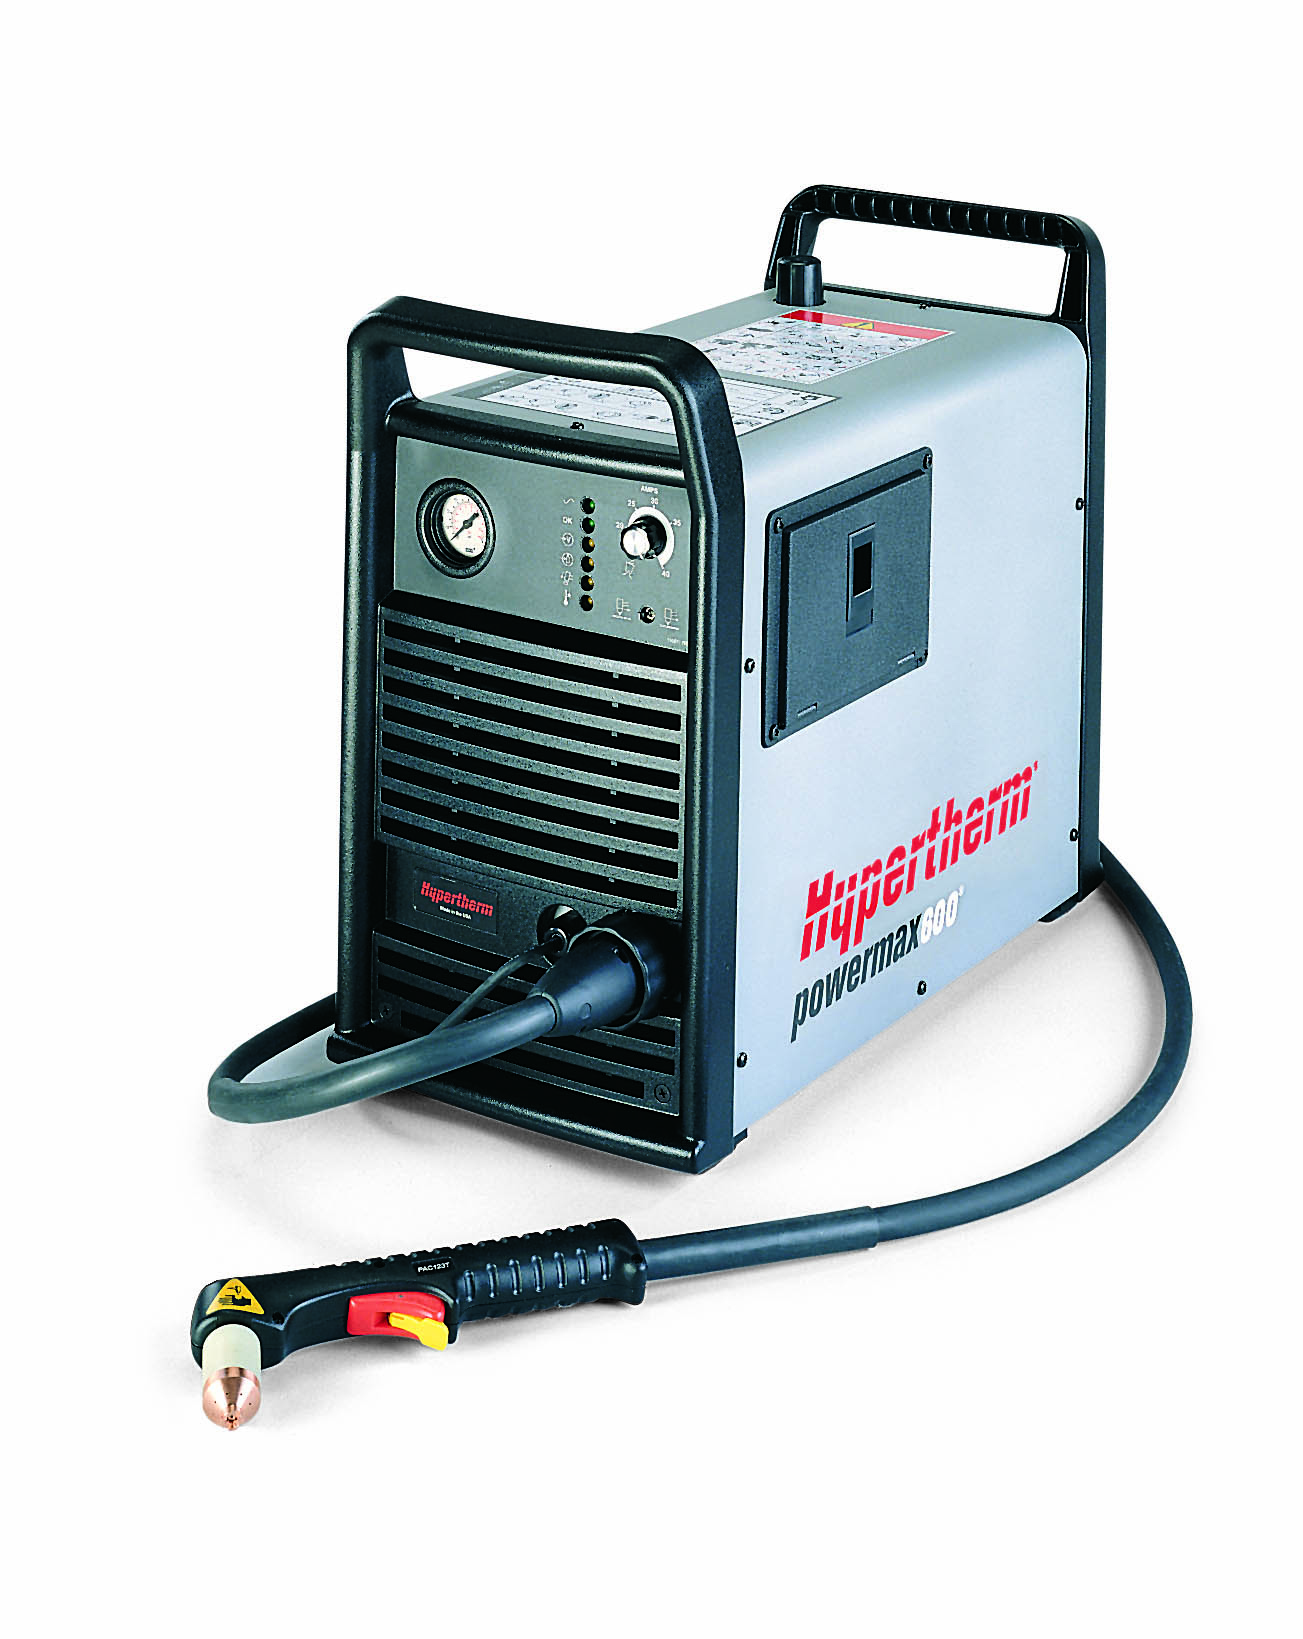 Hypertherm Powermax800